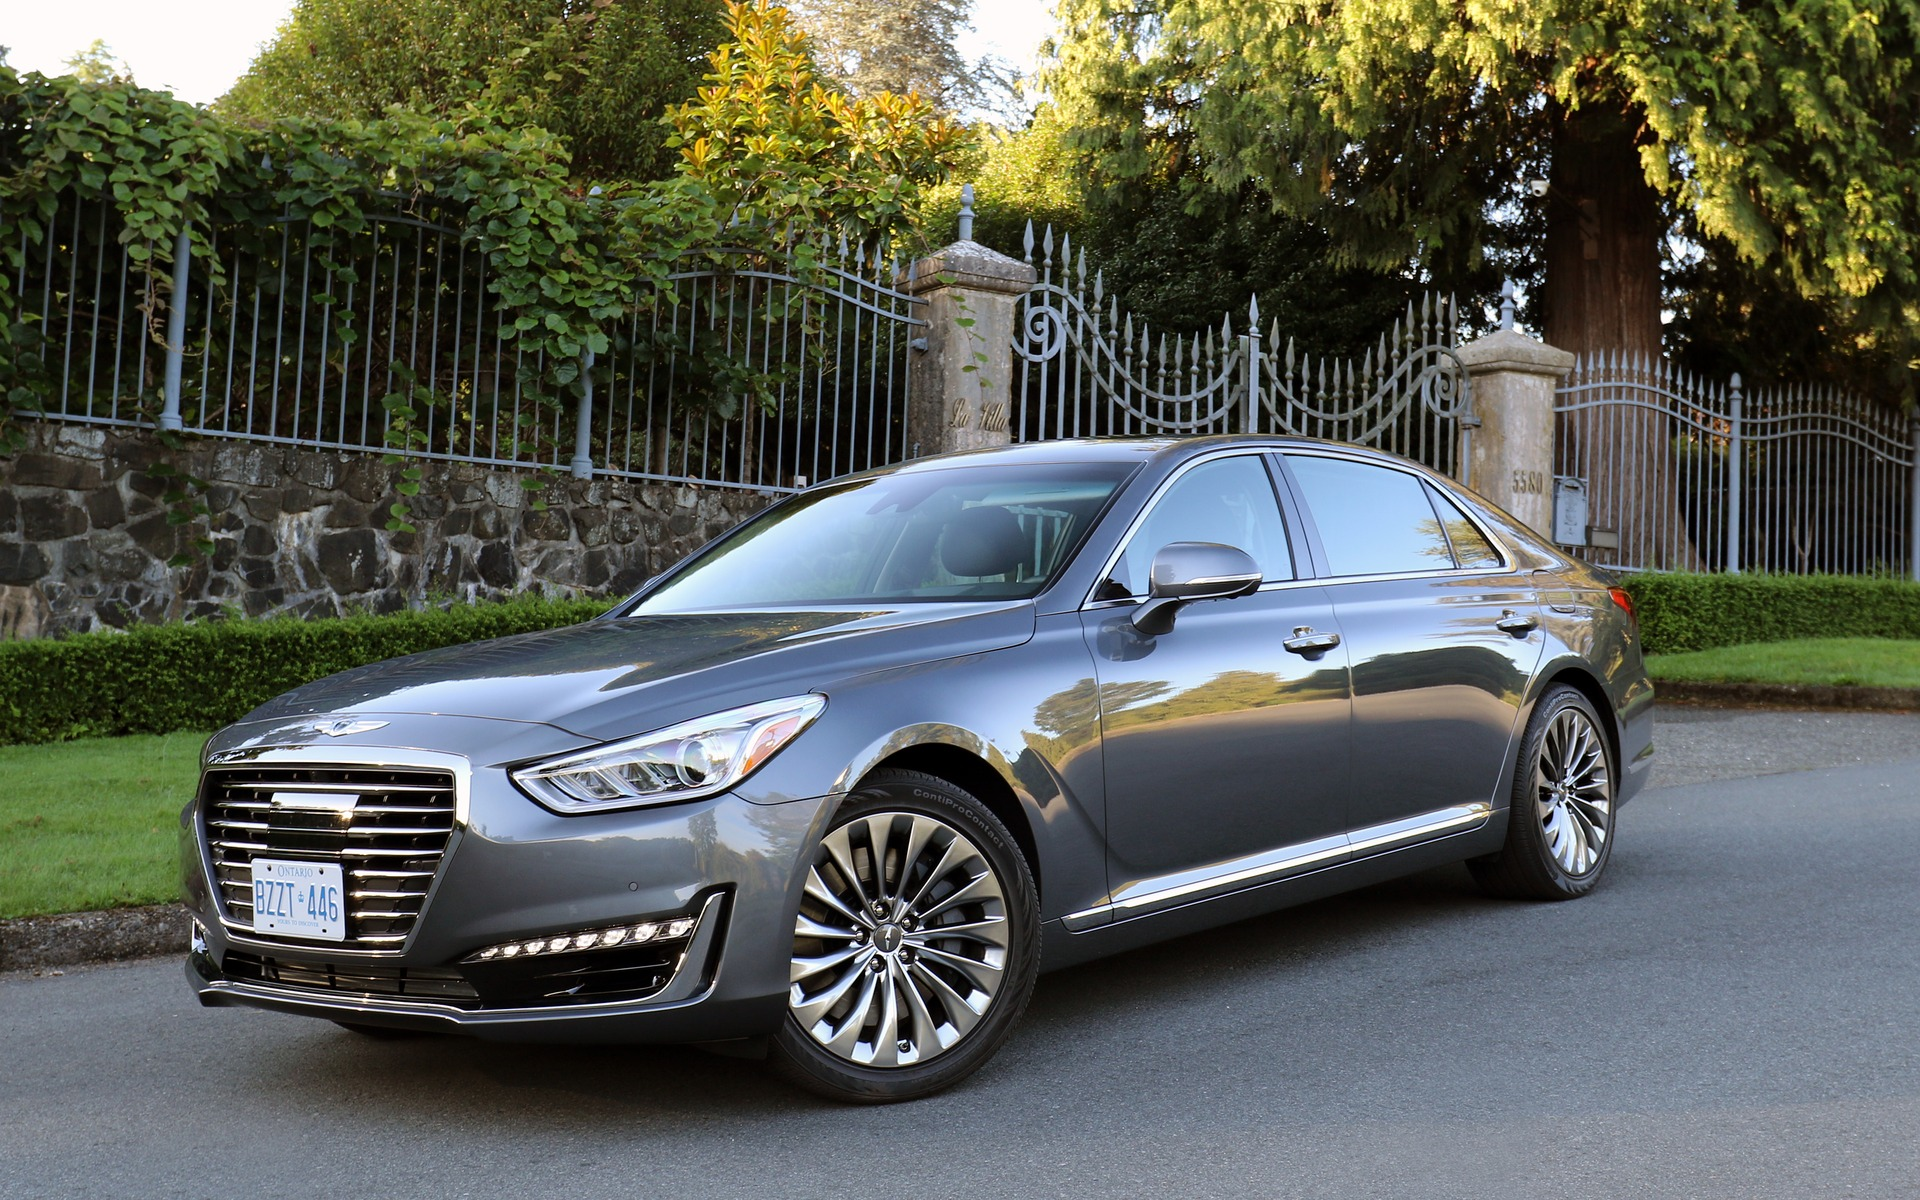 2017 genesis g90 a historic moment for hyundai the car. Black Bedroom Furniture Sets. Home Design Ideas